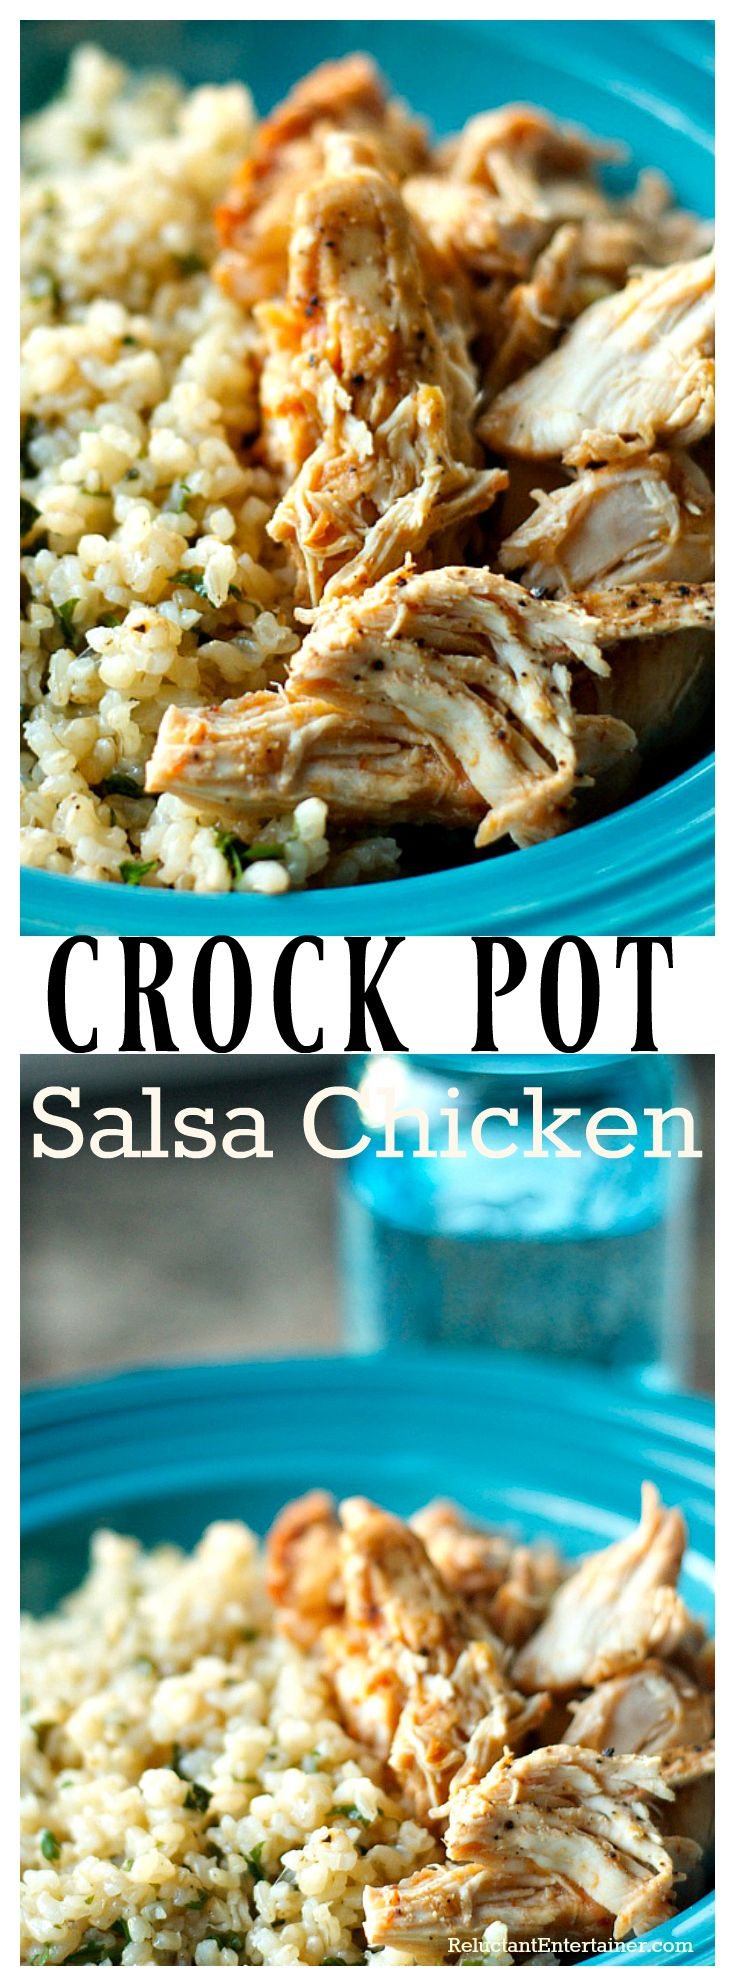 Crock Pot Salsa Chicken on Brown Rice or for Mexican food - tacos, enchiladas, tostadas.